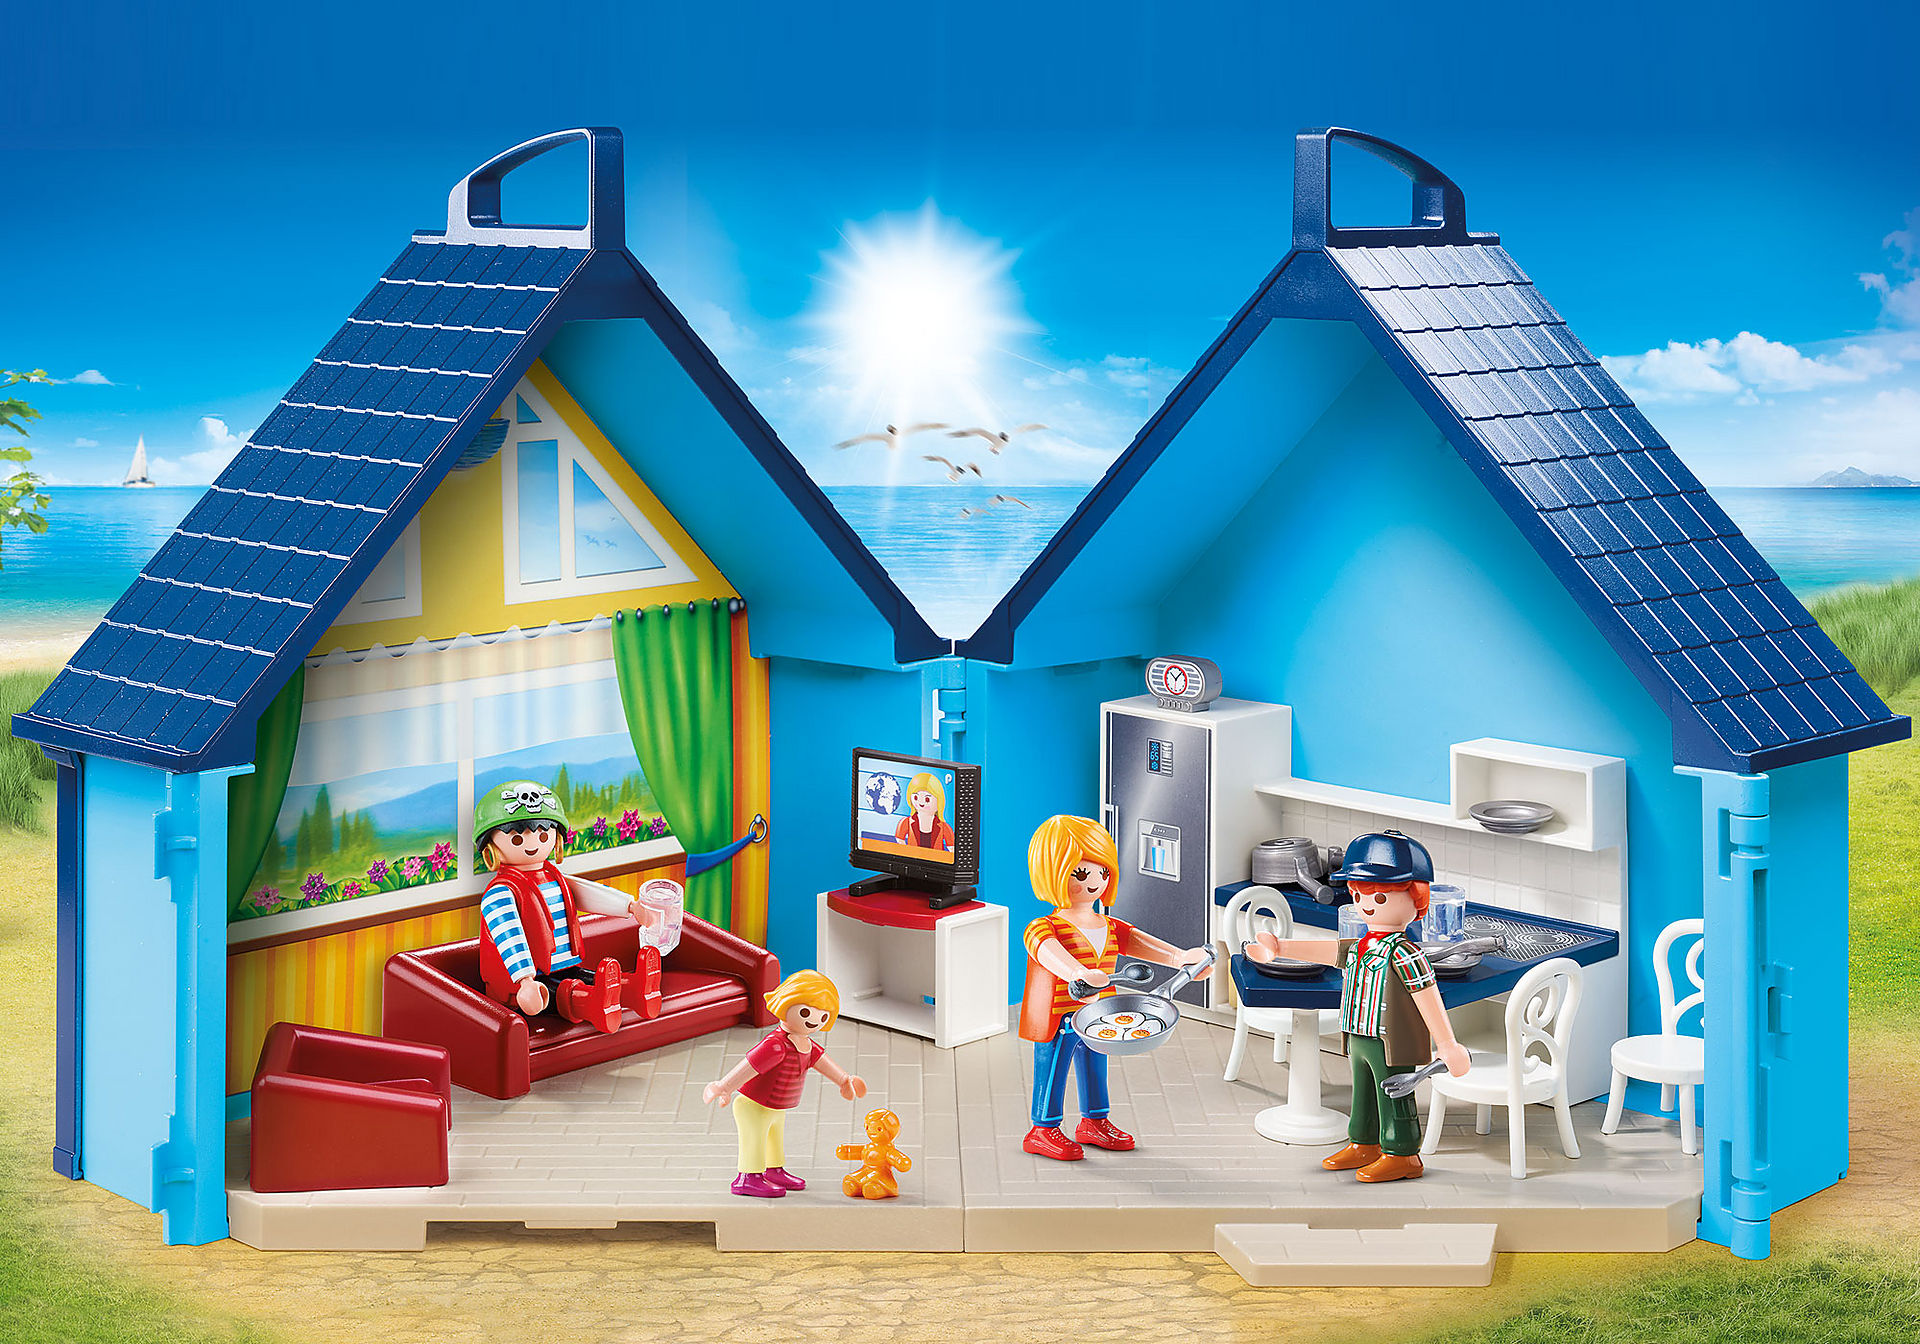 70219 PLAYMOBIL-FunPark Summerhouse Playbox zoom image1